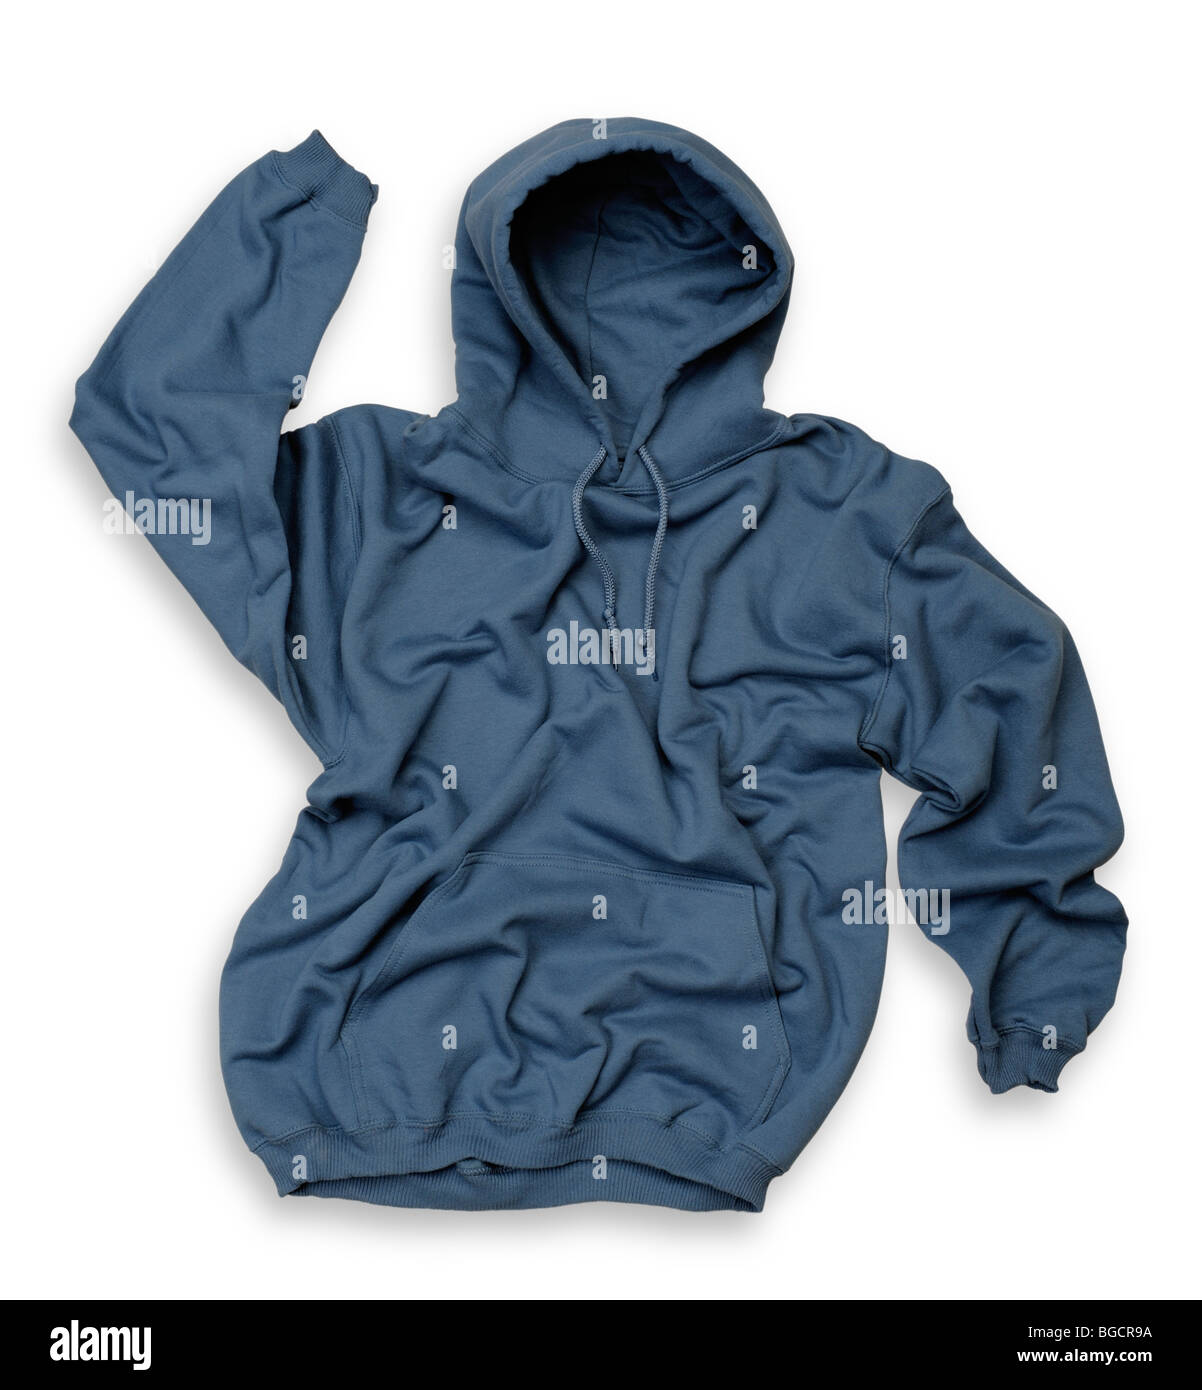 Blue hooded top - Stock Image